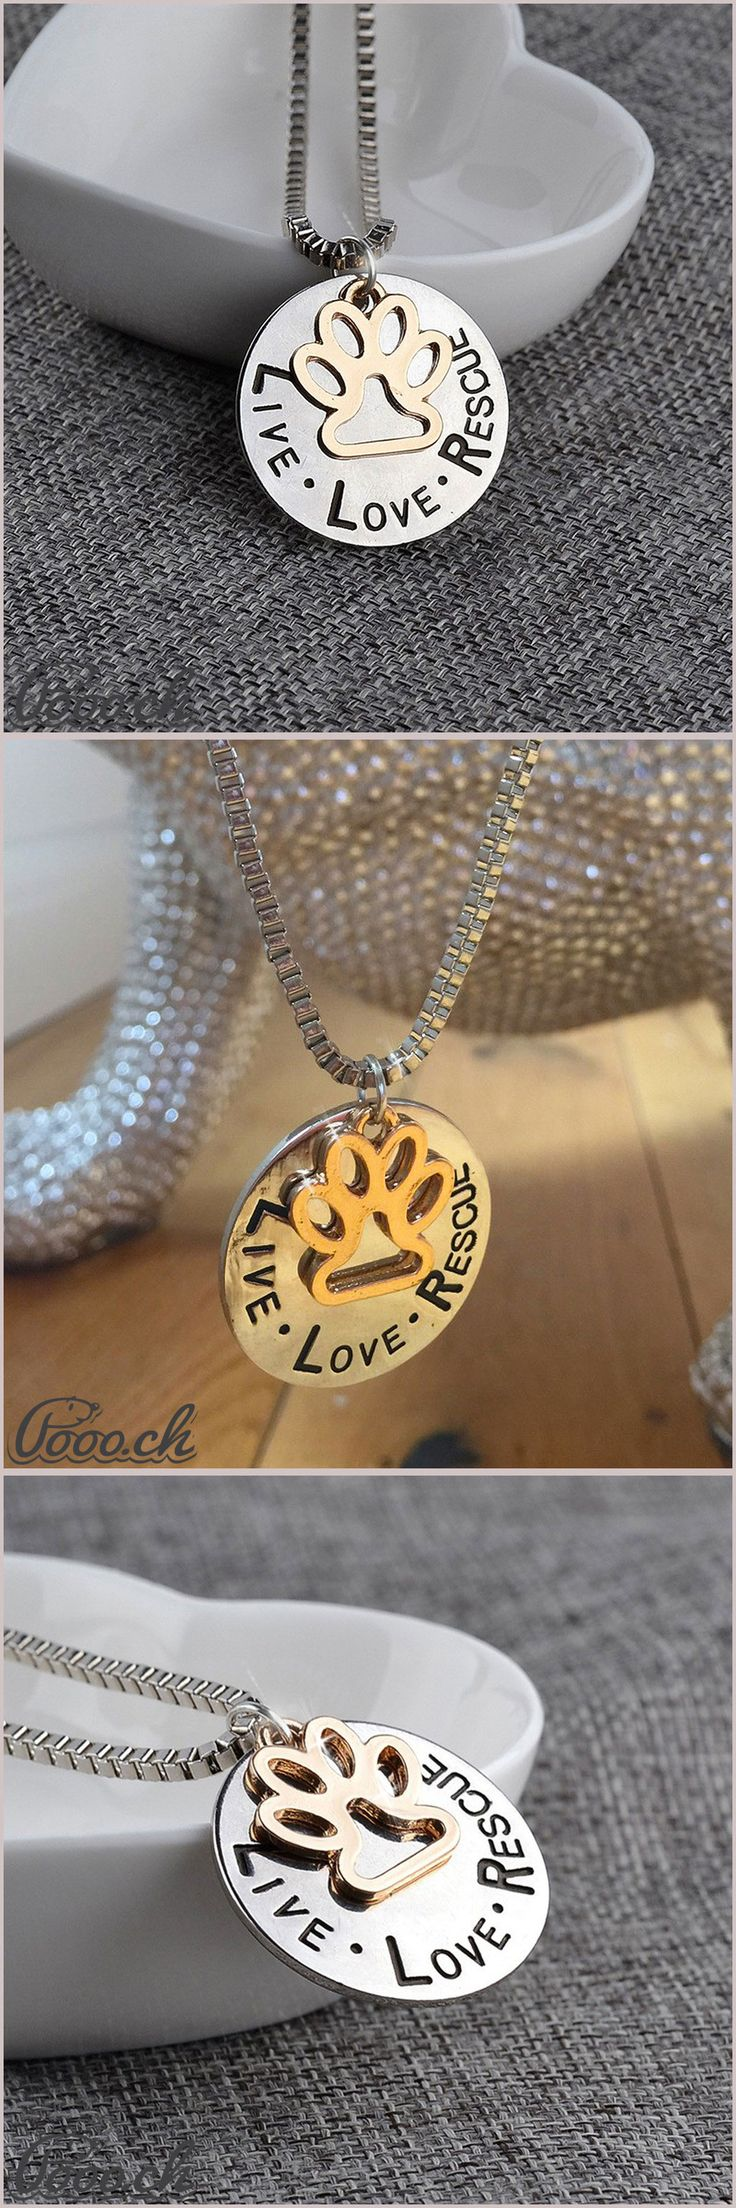 Stunning Live Love Rescue Necklace | Pooo.ch